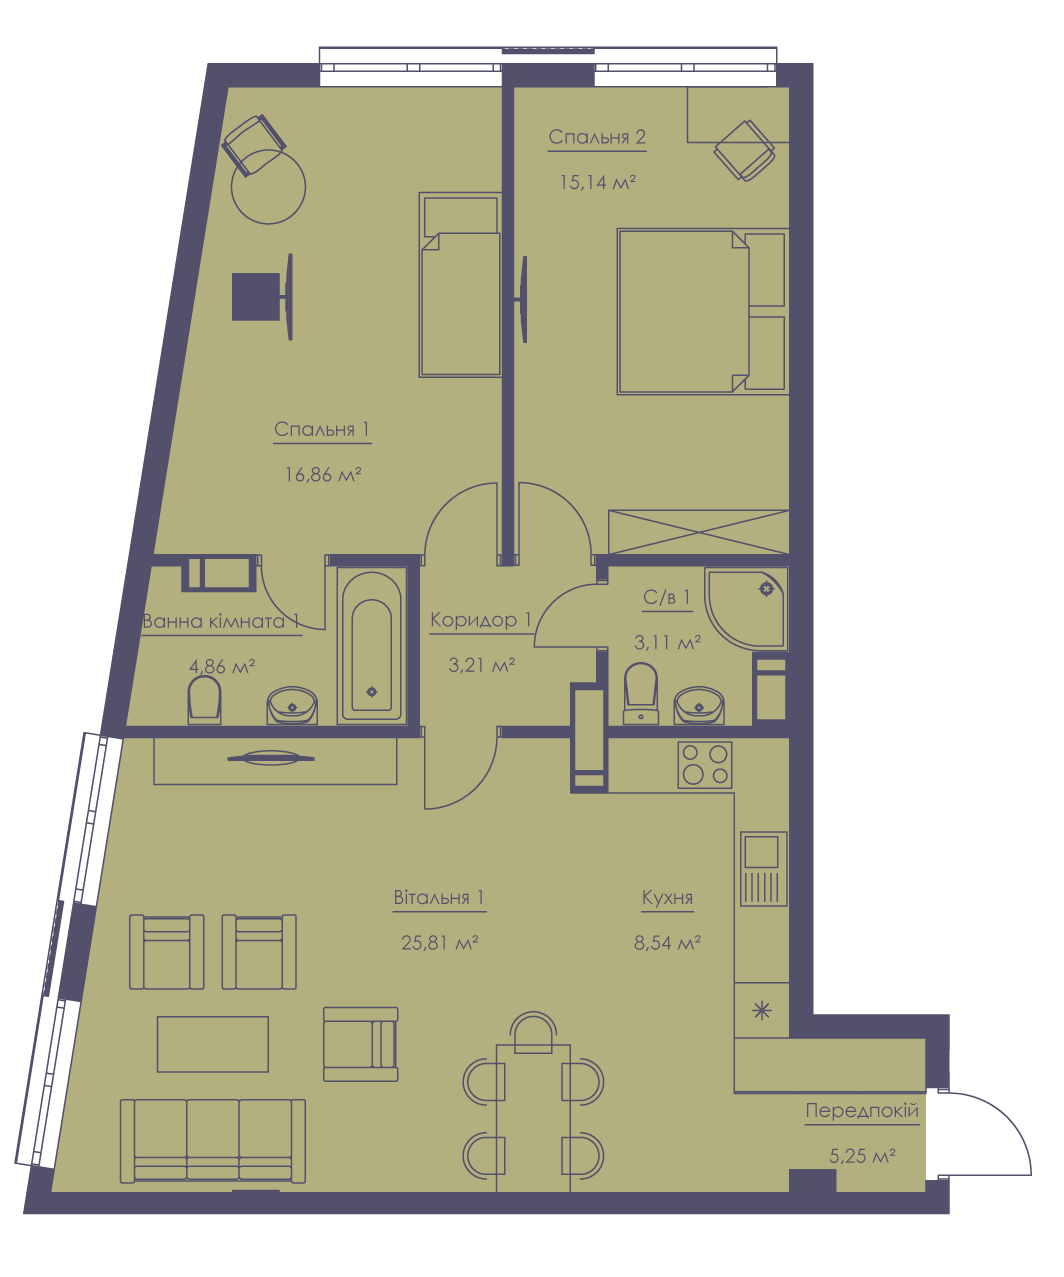 Apartment layout KV_96_3n_1_1_7-1